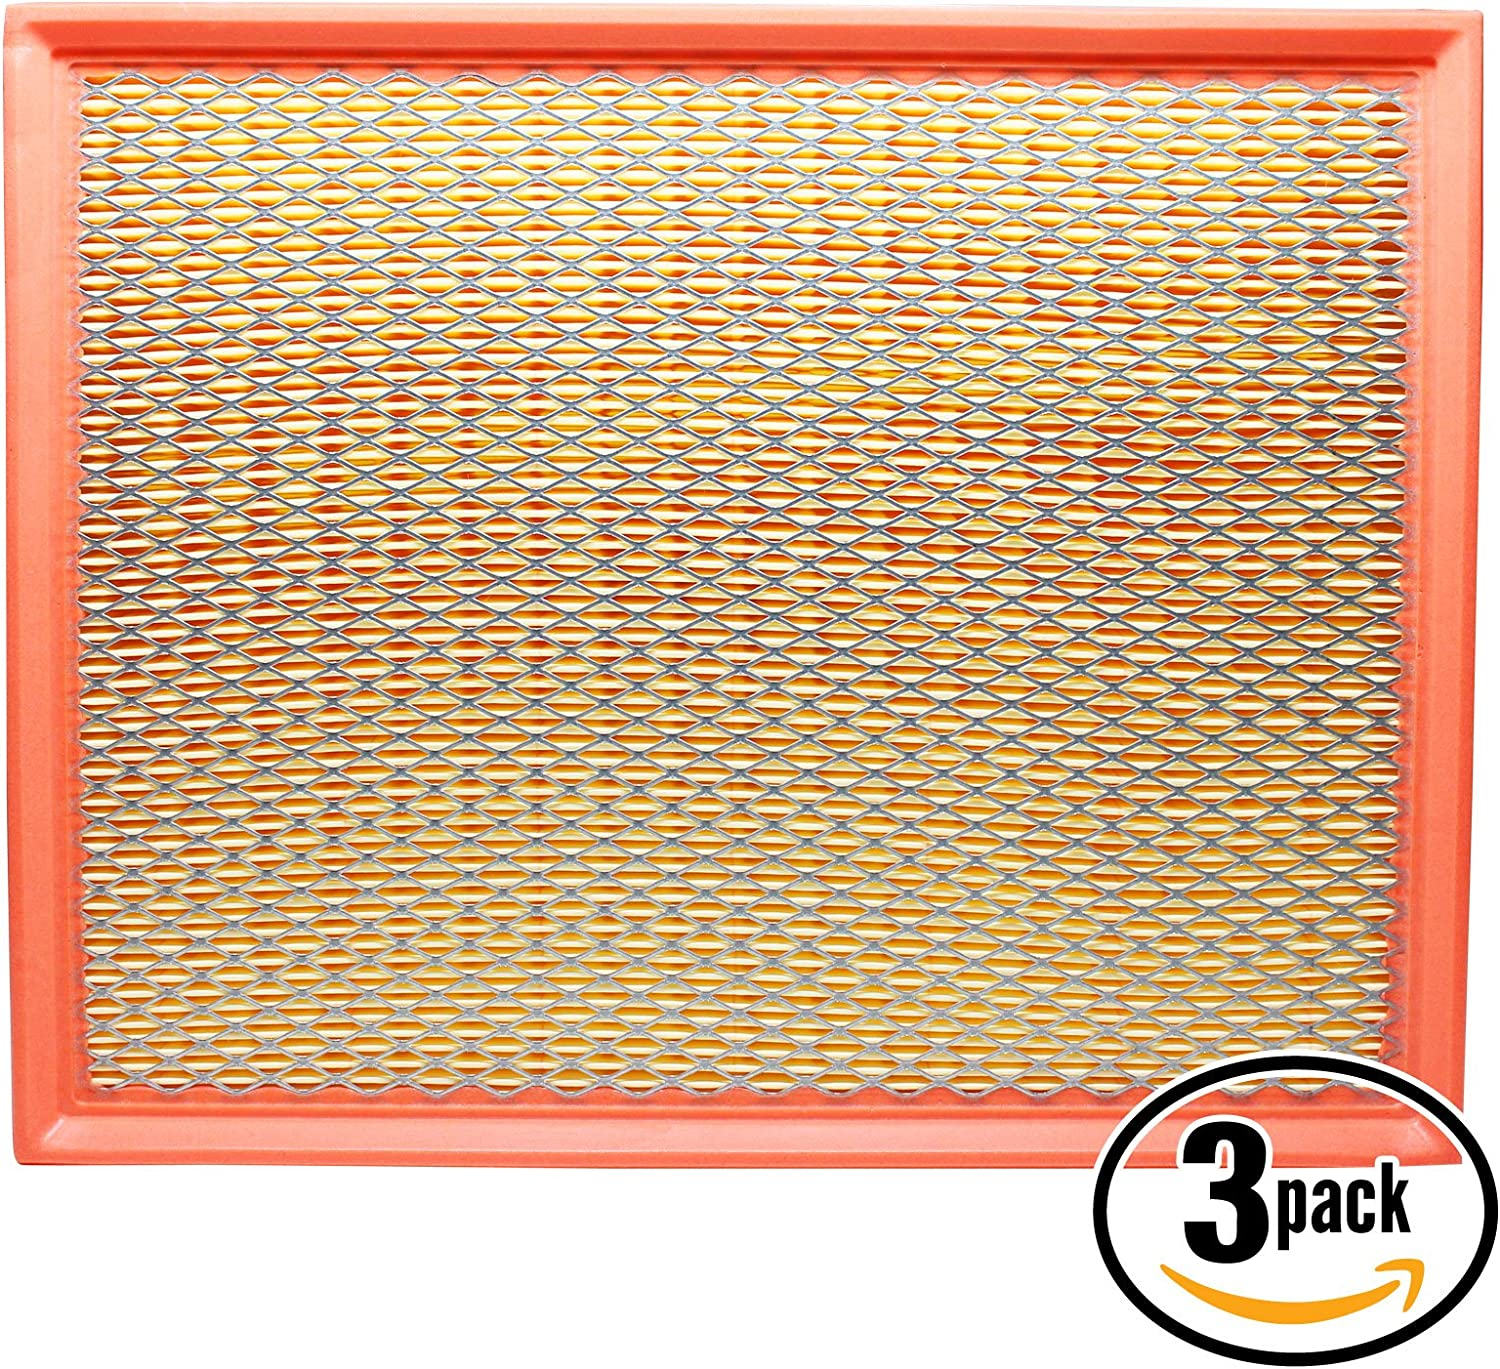 Flexible Panel Filter ACA-8755A 6-Pack Replacement Engine Air Filter for 2003 GMC Sierra 2500 HD V8 6.6 Car//Automotive